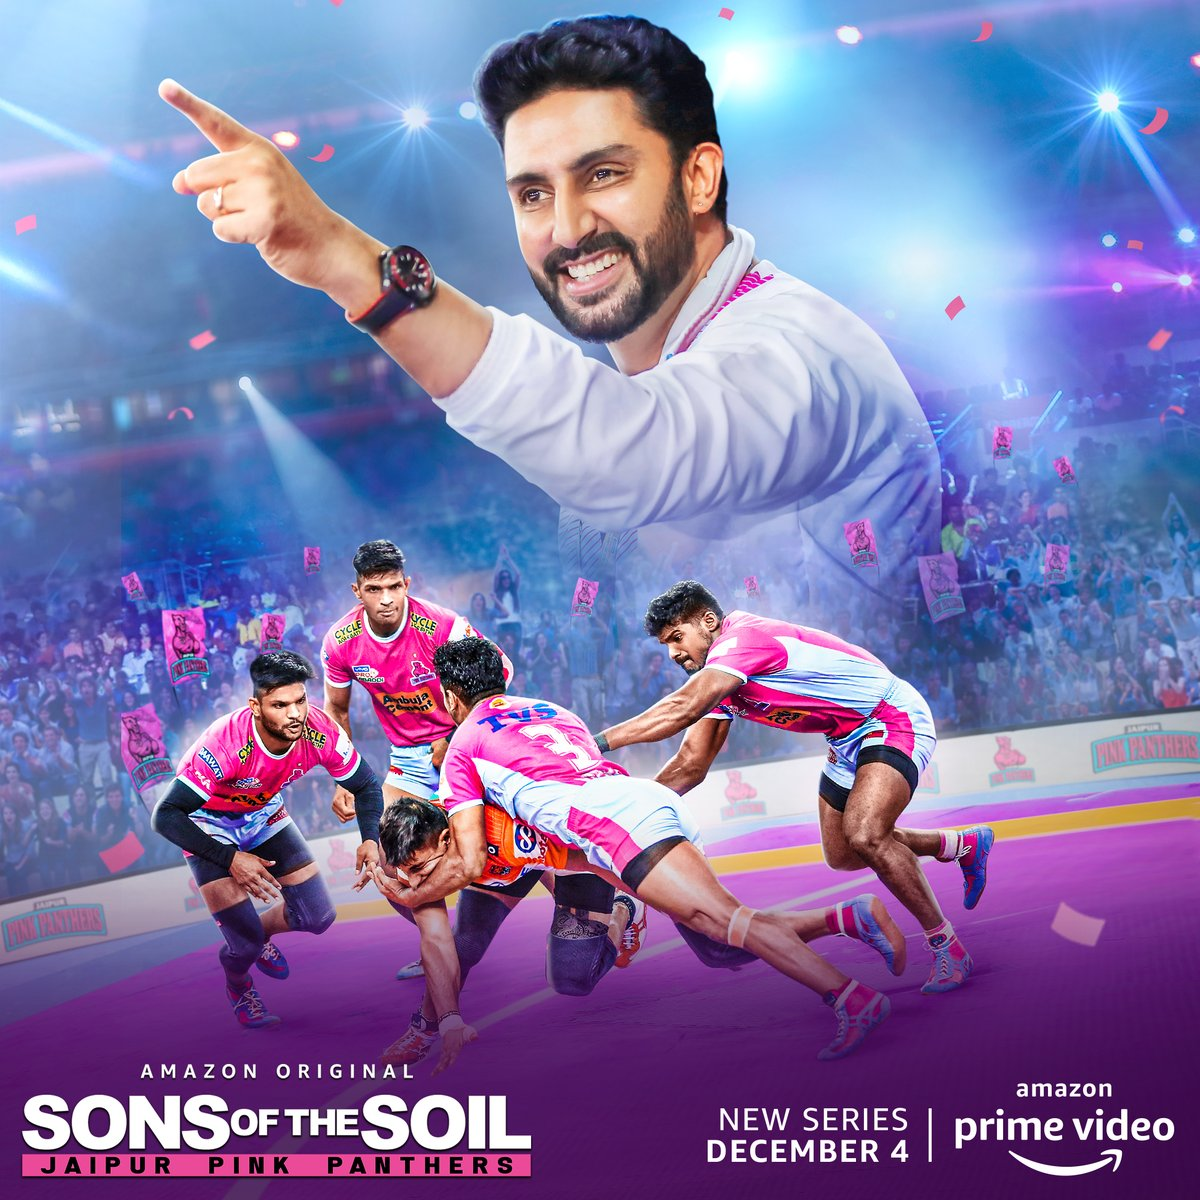 #SonsOfTheSoil Web Series  Star cast #AbhishekBachchan #SandeepDhull #AmitHooda and #DeepakHooda #NitinRawal and #SrinivasReddy #NileshSalunke and #DeepakNarwal #SaurabhMishra and  #BuntyWalia Language #Hindi  Release #4Dec2020 #AmazonPrimeVideo